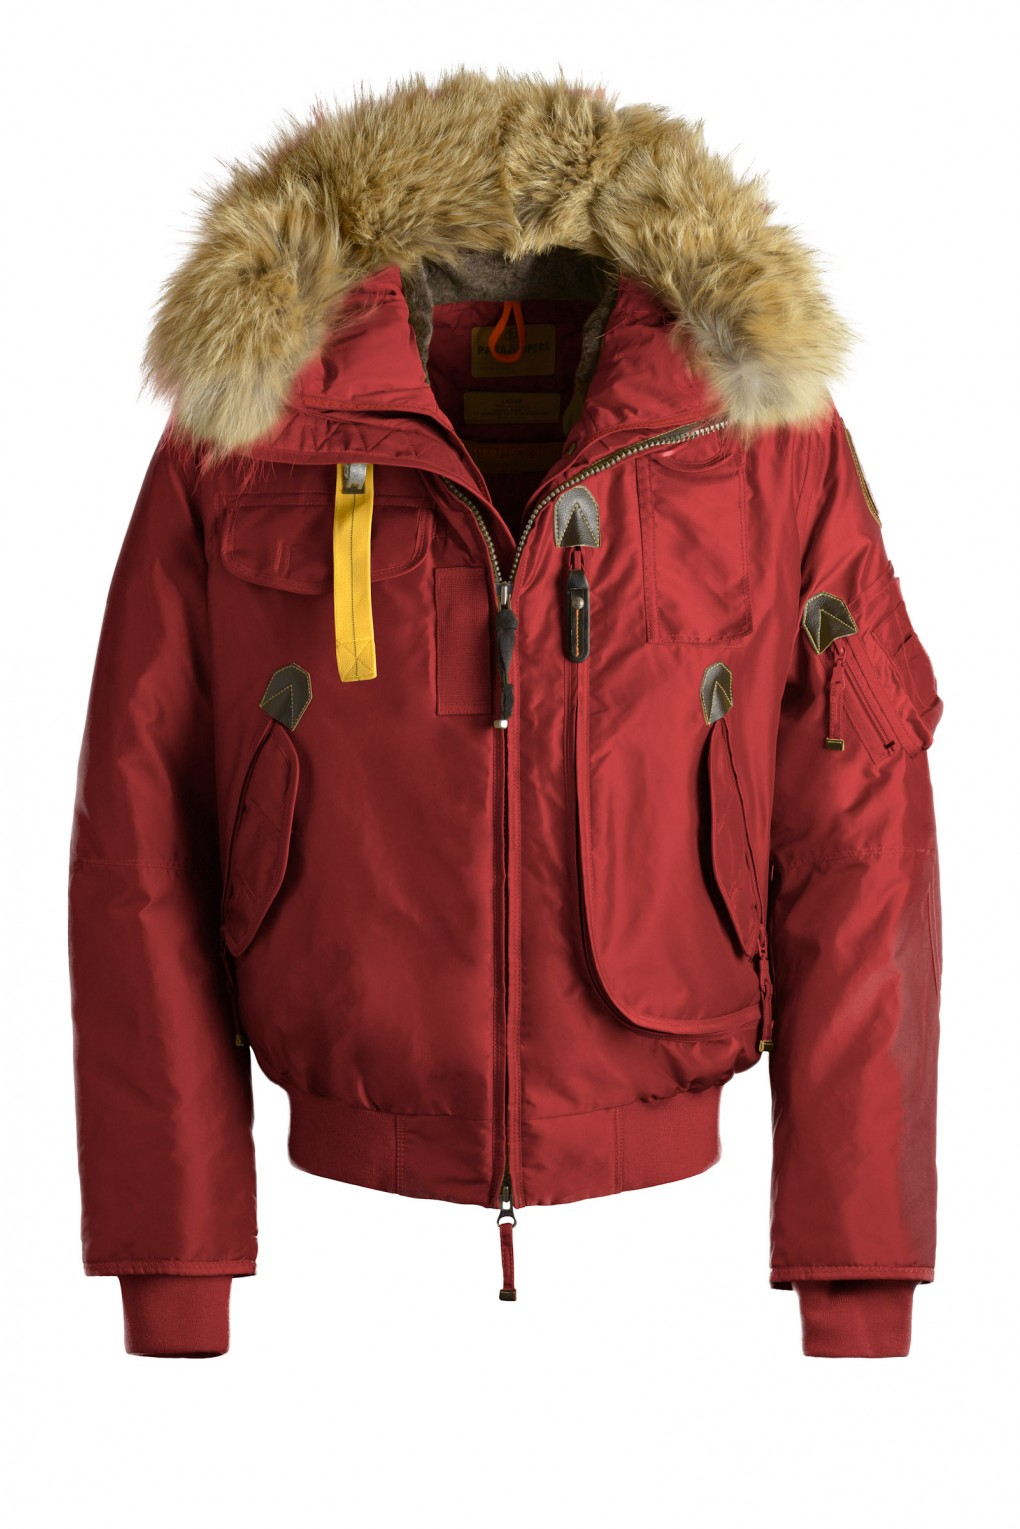 parajumpers GOBI man outerwear Red